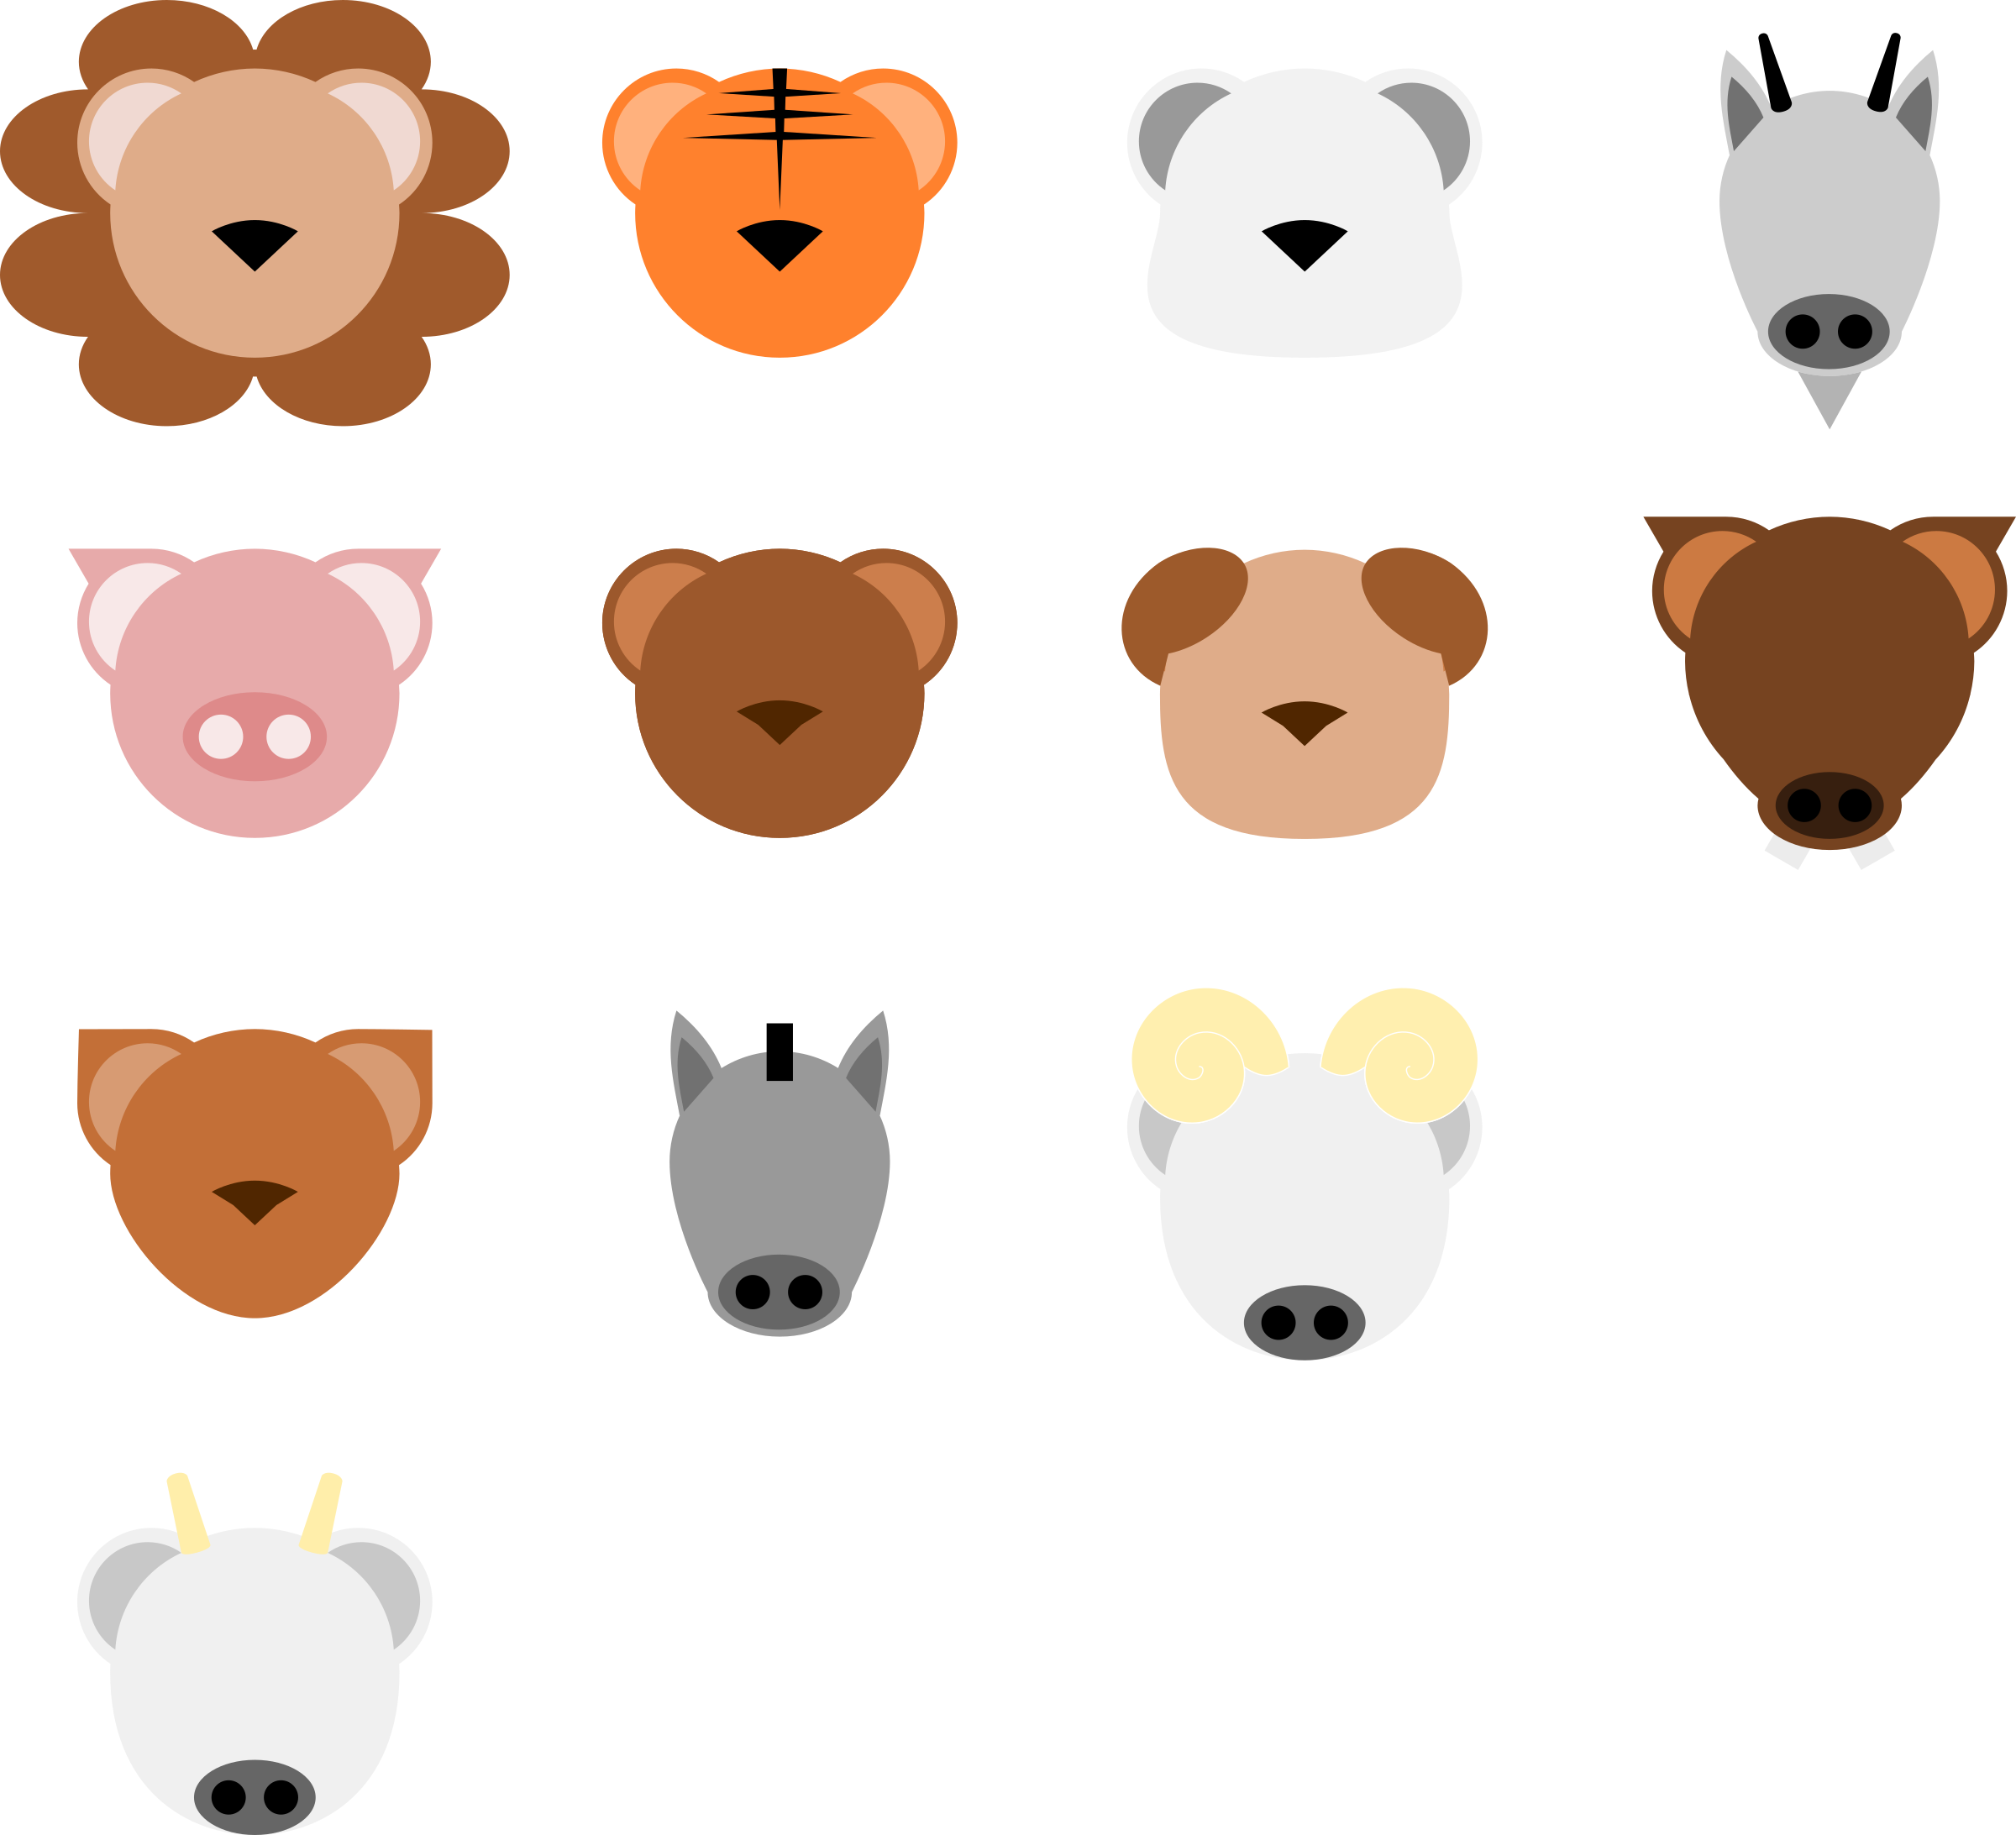 Animal face icons png. Foods clipart minimalist